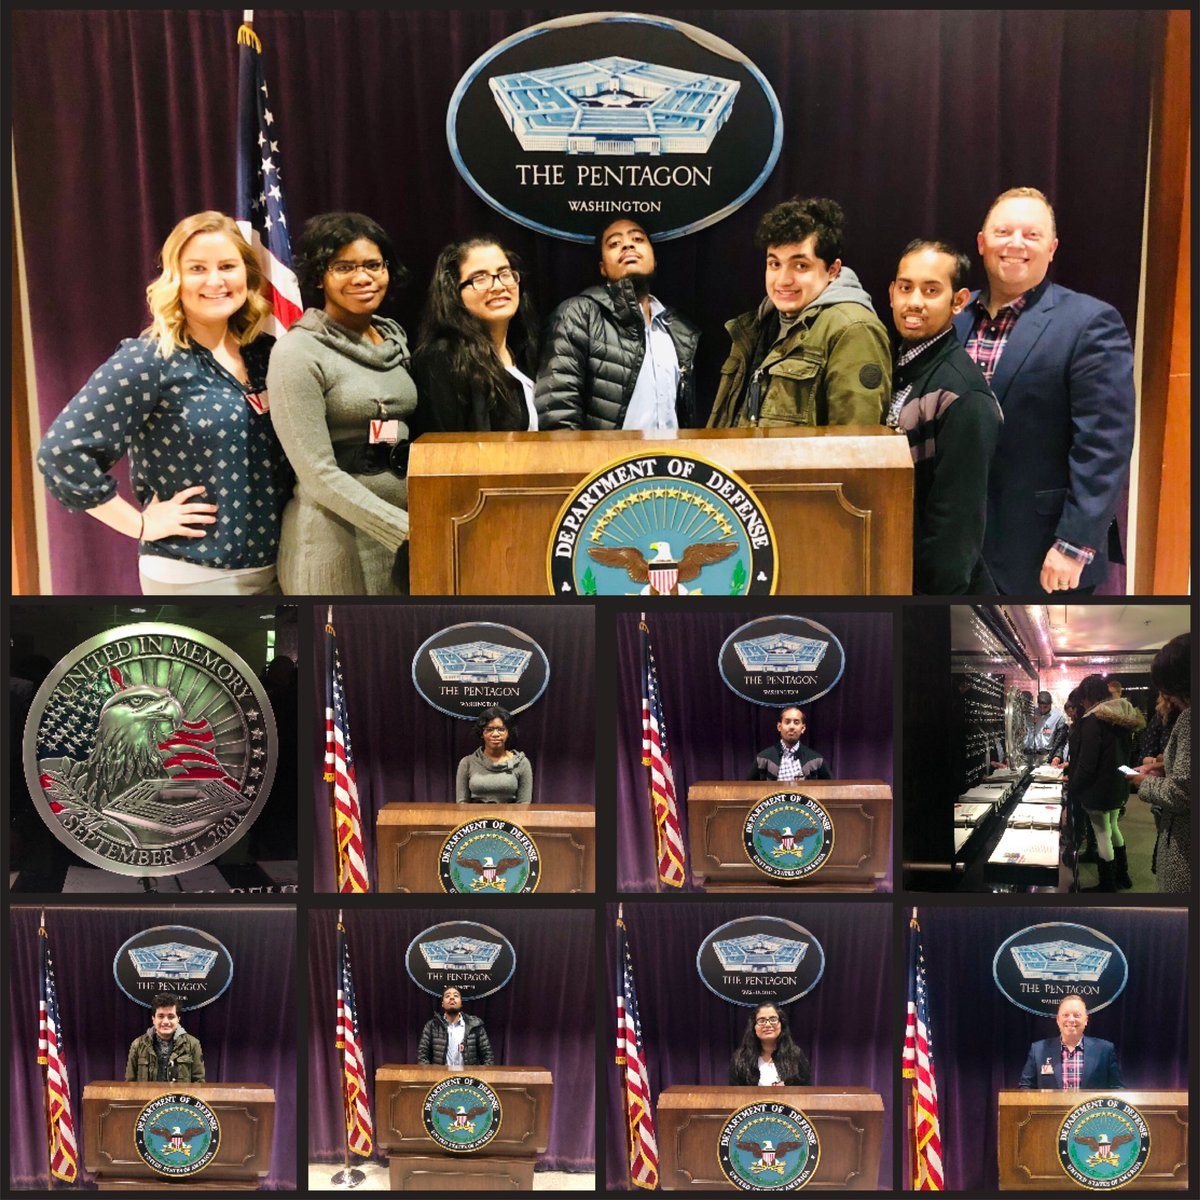 Some Community Based Instruction before our amazing private tour of the Pentagon.  A special thanks to our DARS team! <a target='_blank' href='http://twitter.com/Margaretchungcc'>@Margaretchungcc</a> <a target='_blank' href='http://twitter.com/MsBakerACC'>@MsBakerACC</a> <a target='_blank' href='http://twitter.com/APHealeyACC'>@APHealeyACC</a> <a target='_blank' href='http://twitter.com/ArlingtonSEPTA'>@ArlingtonSEPTA</a> <a target='_blank' href='http://twitter.com/APS_SpecEduc'>@APS_SpecEduc</a> <a target='_blank' href='http://twitter.com/APSCareerCenter'>@APSCareerCenter</a> <a target='_blank' href='http://twitter.com/ACC_Partners'>@ACC_Partners</a> <a target='_blank' href='https://t.co/nYWRU6YTDm'>https://t.co/nYWRU6YTDm</a>